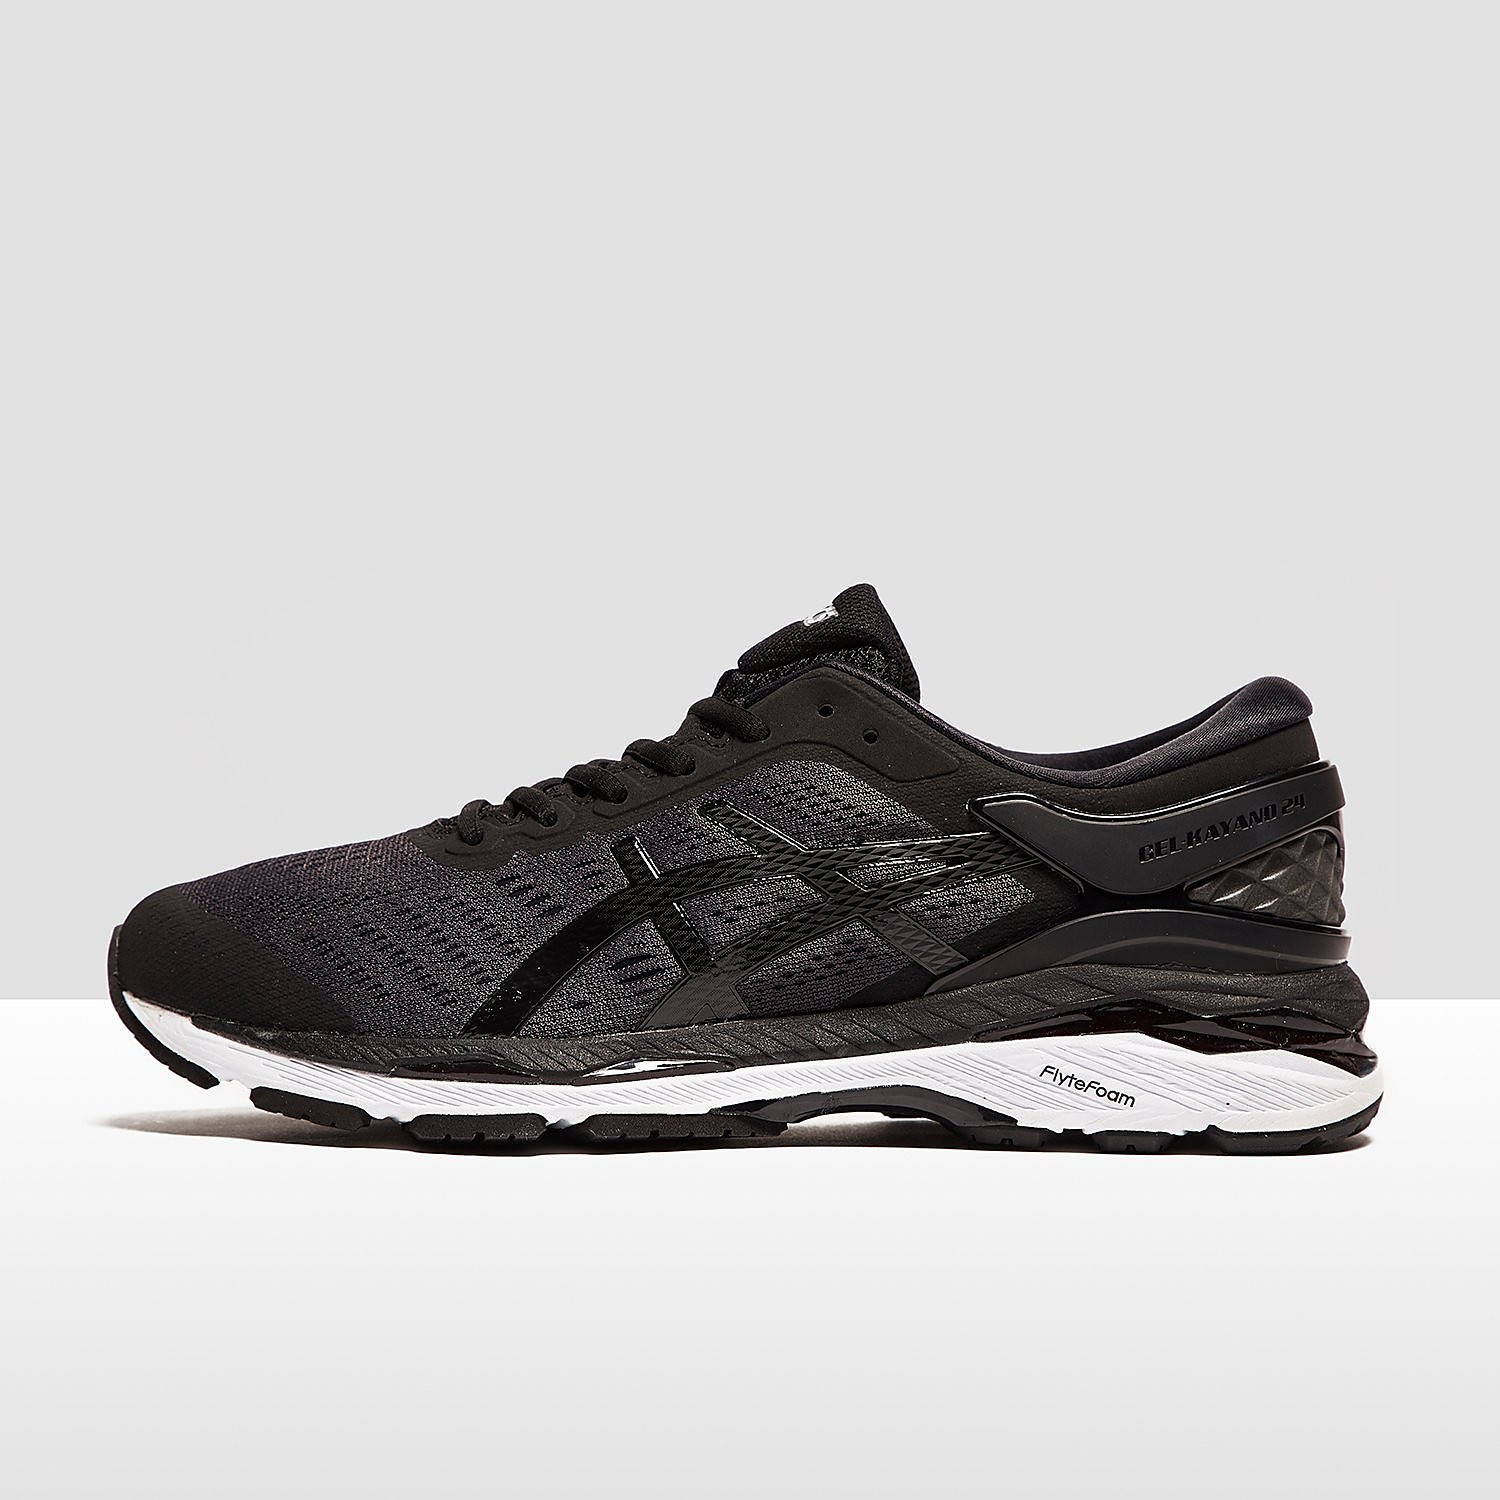 ASICS Gel-Kayano 24 Men's Running Shoes